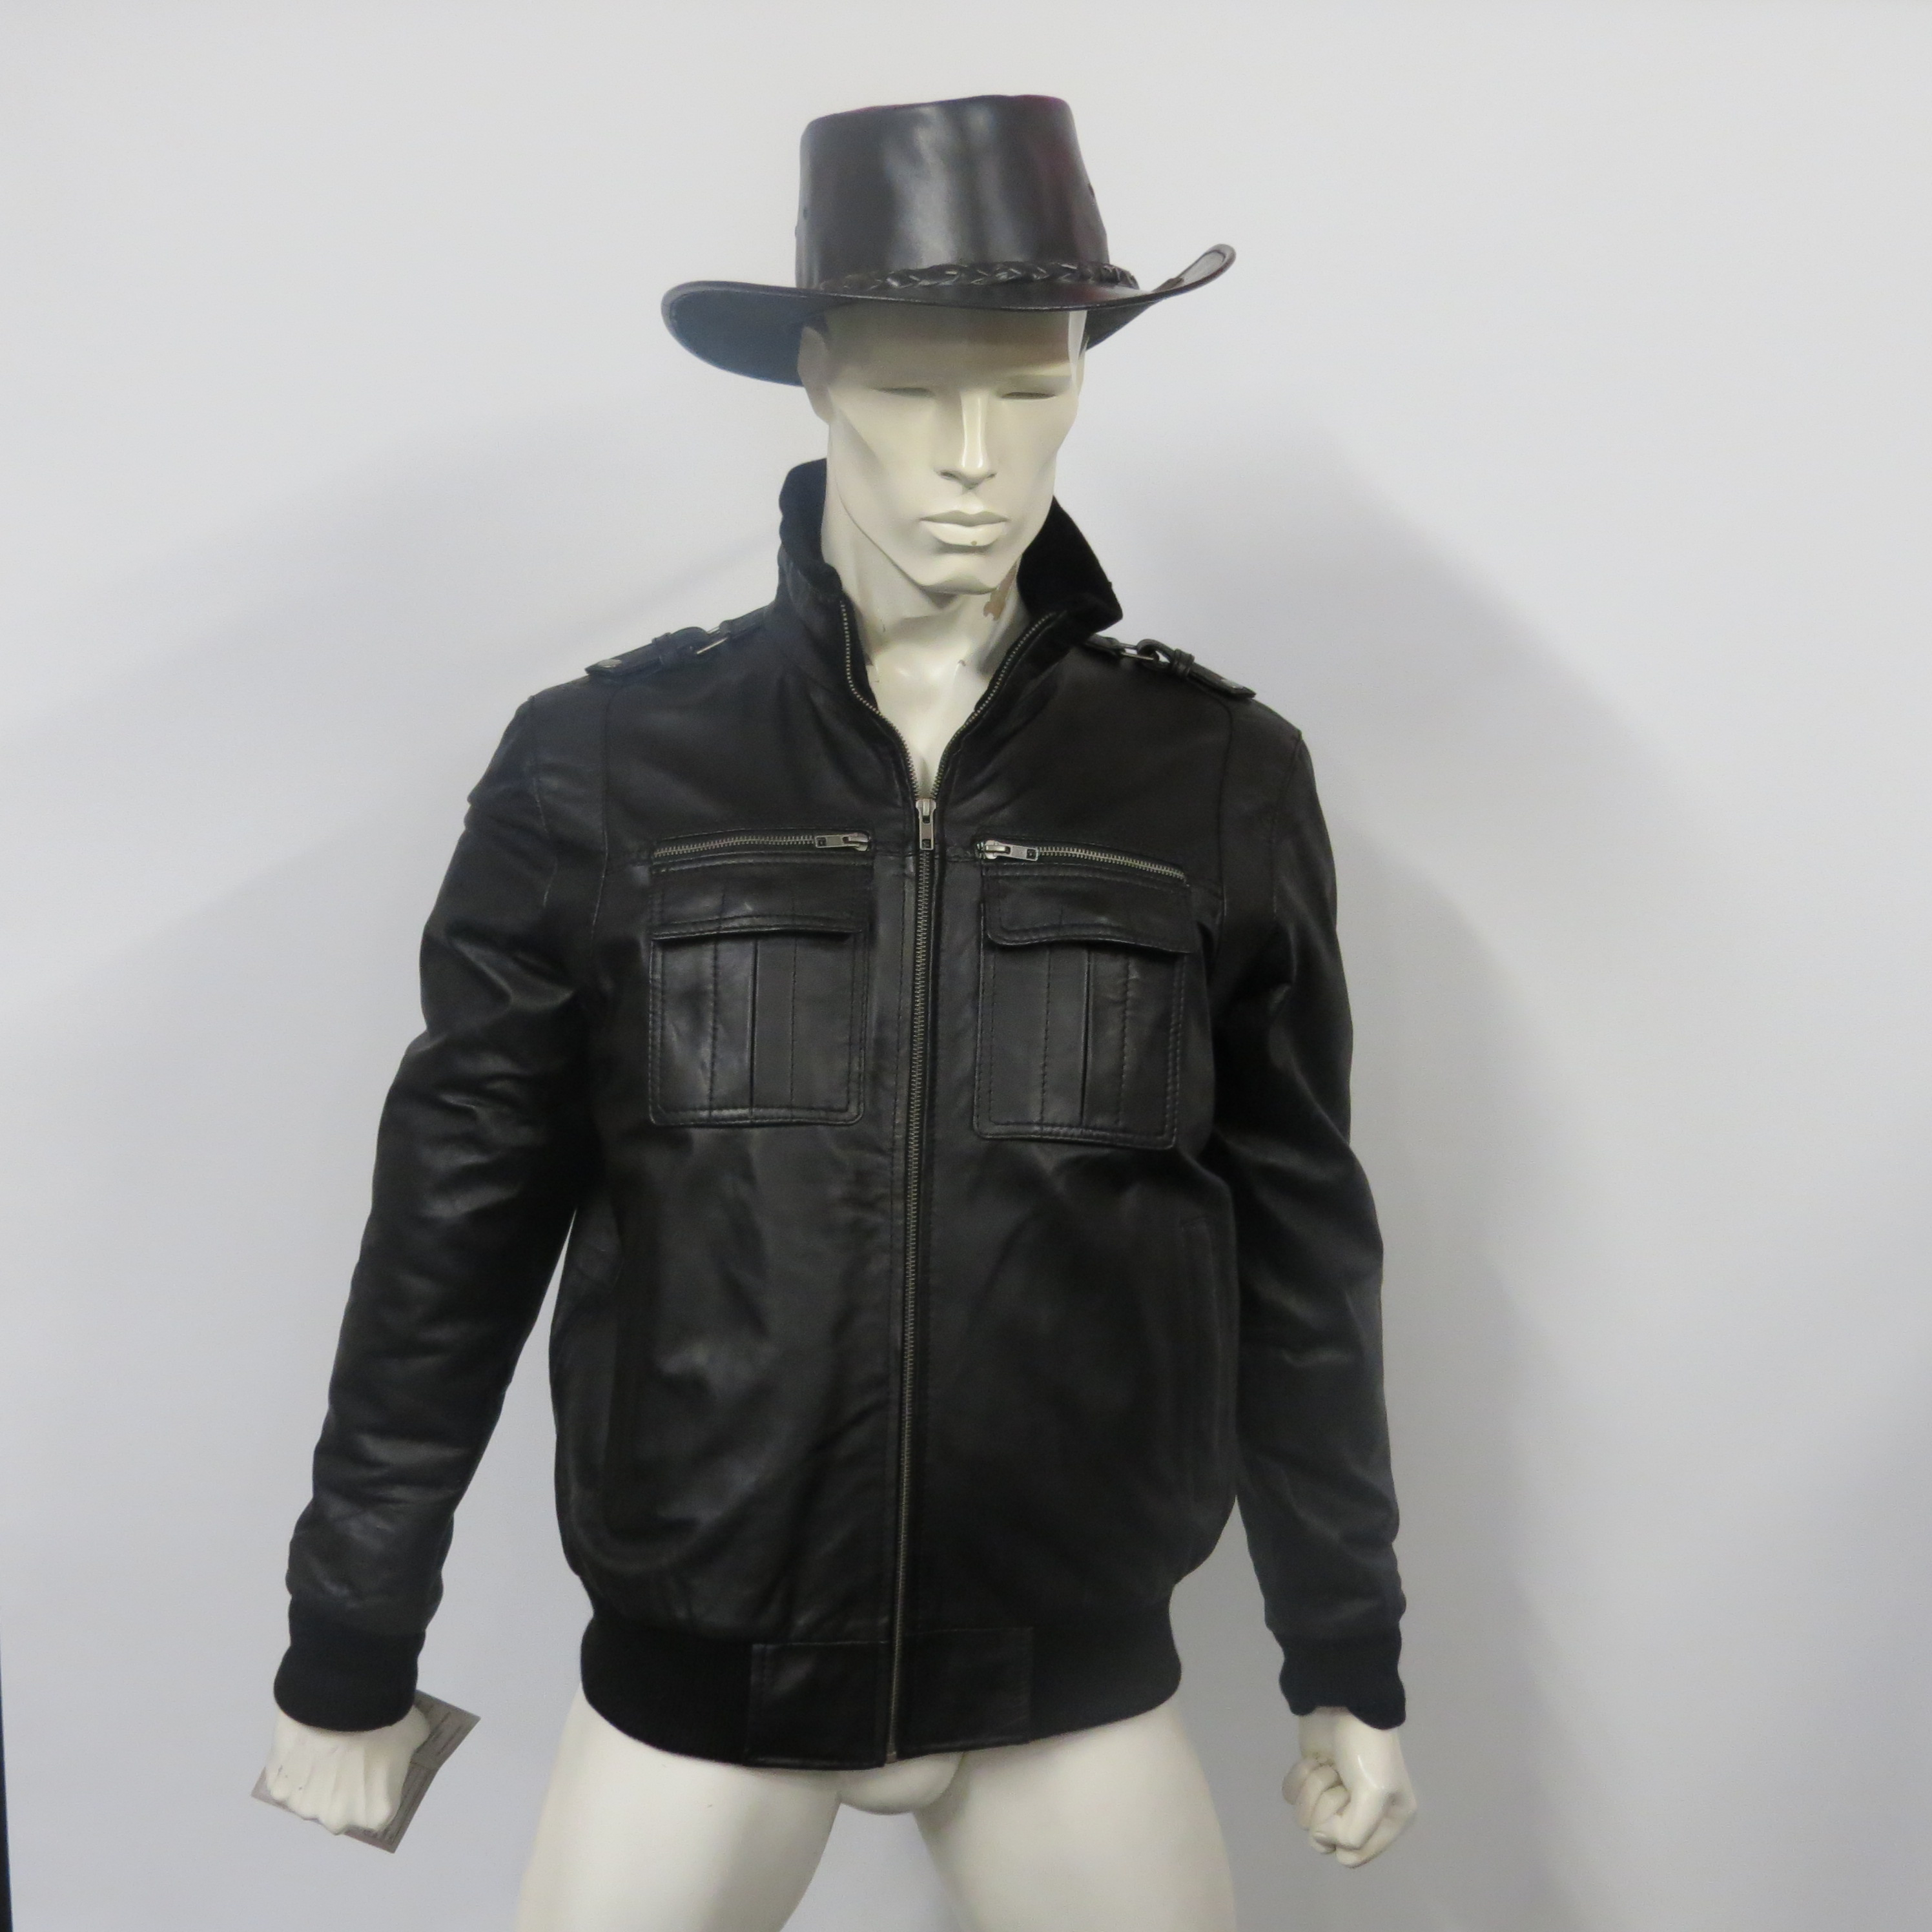 Mens 61114 A1 grade soft brown or black (pictured) nappa leather, sizes small to 4XL.